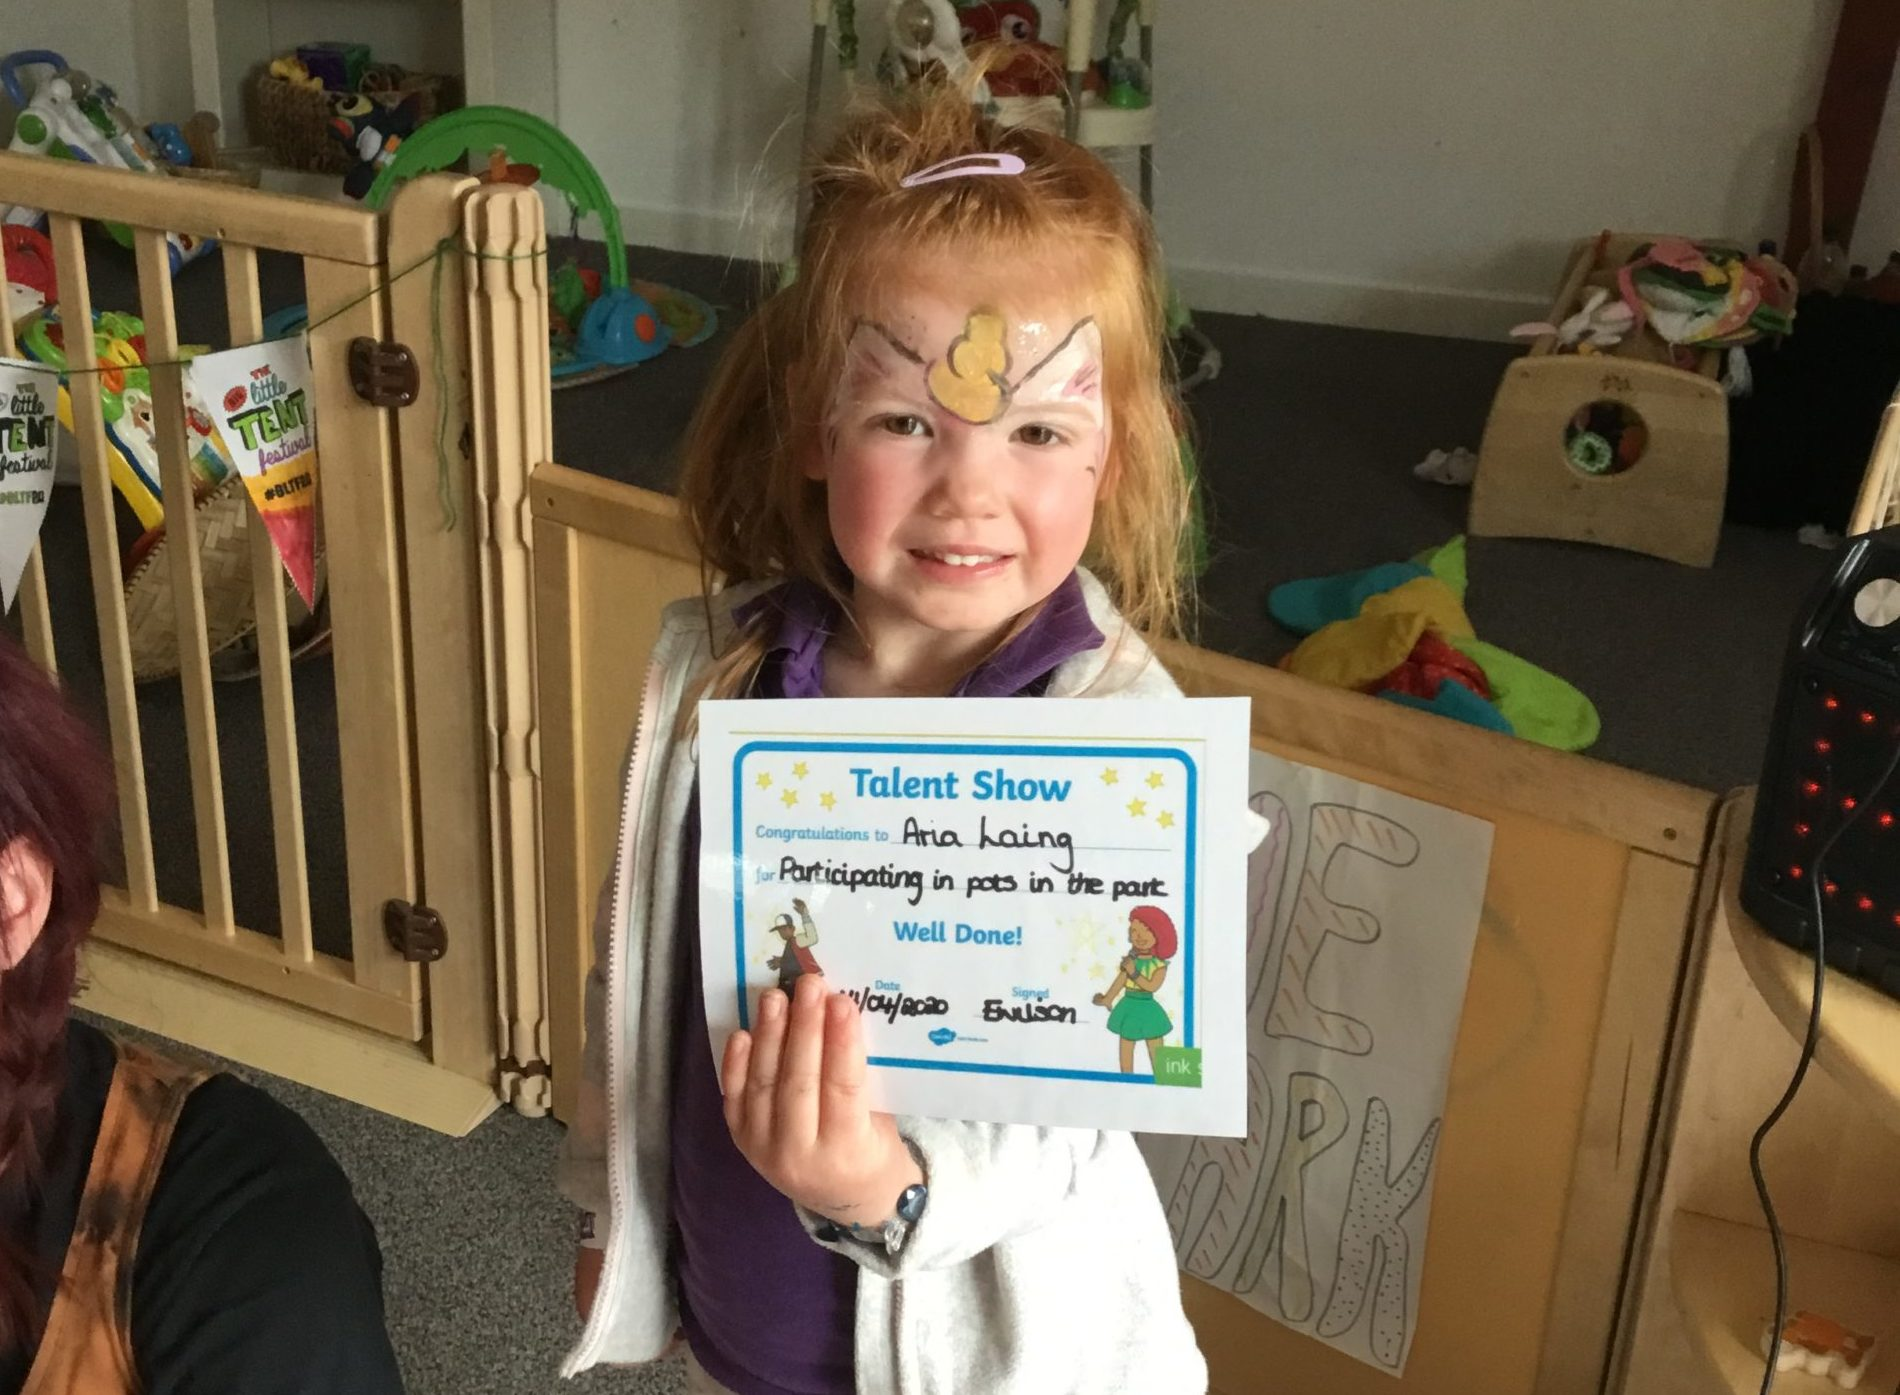 Youngsters, including Ana Laing, have been enjoying the activities at Flowerpots Nursery.